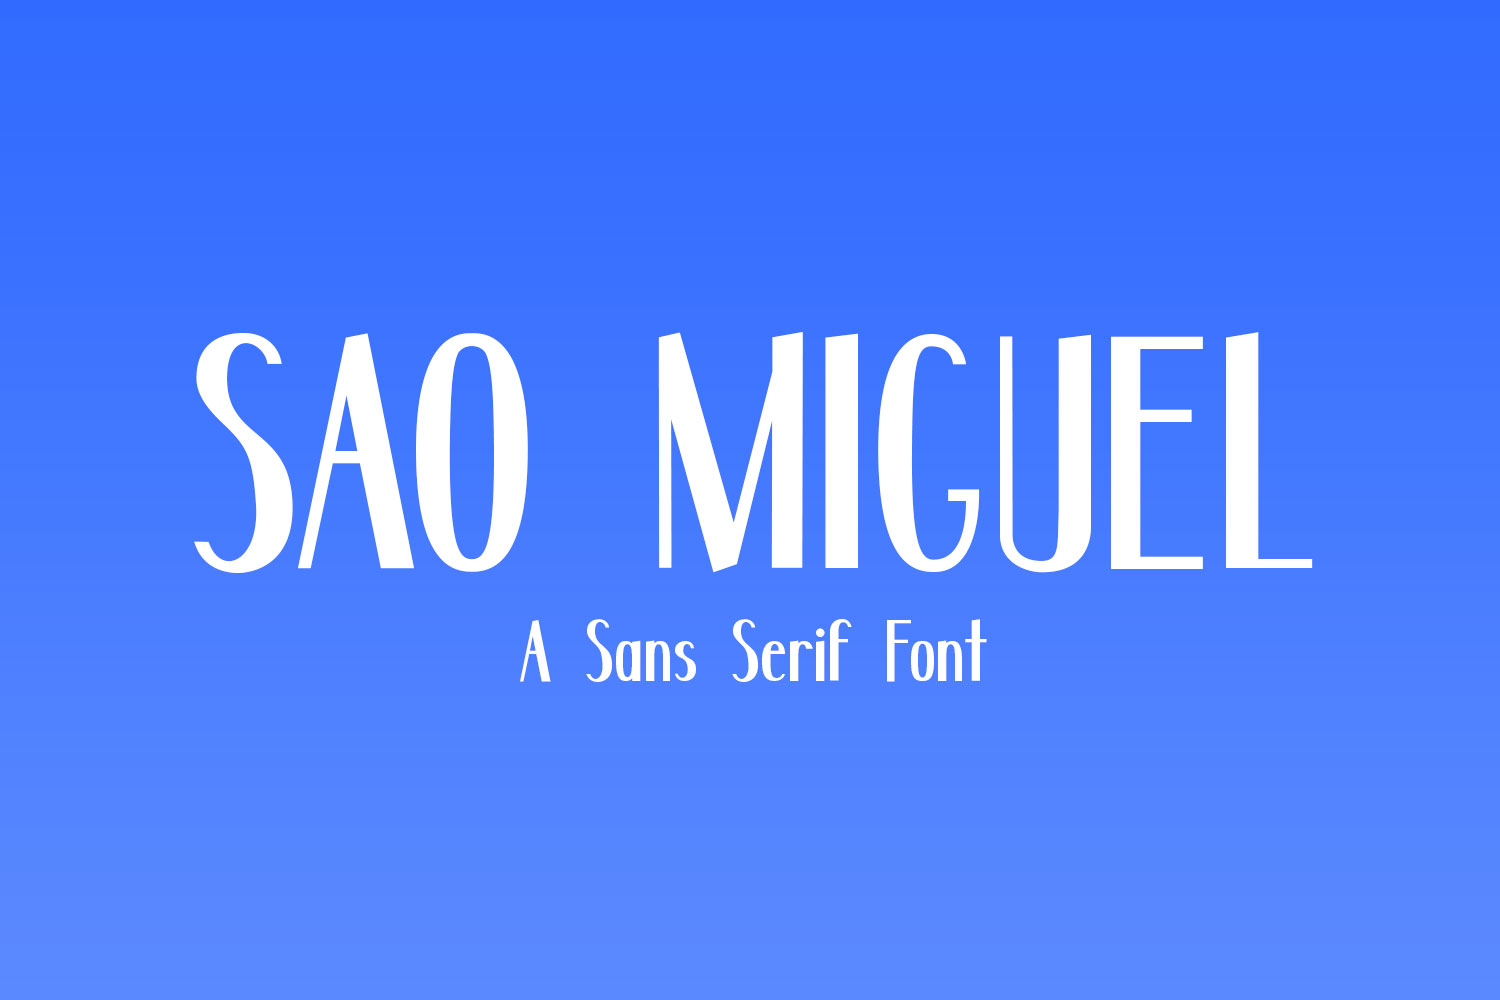 Sao Miguel - A Sans Serif Font example image 1